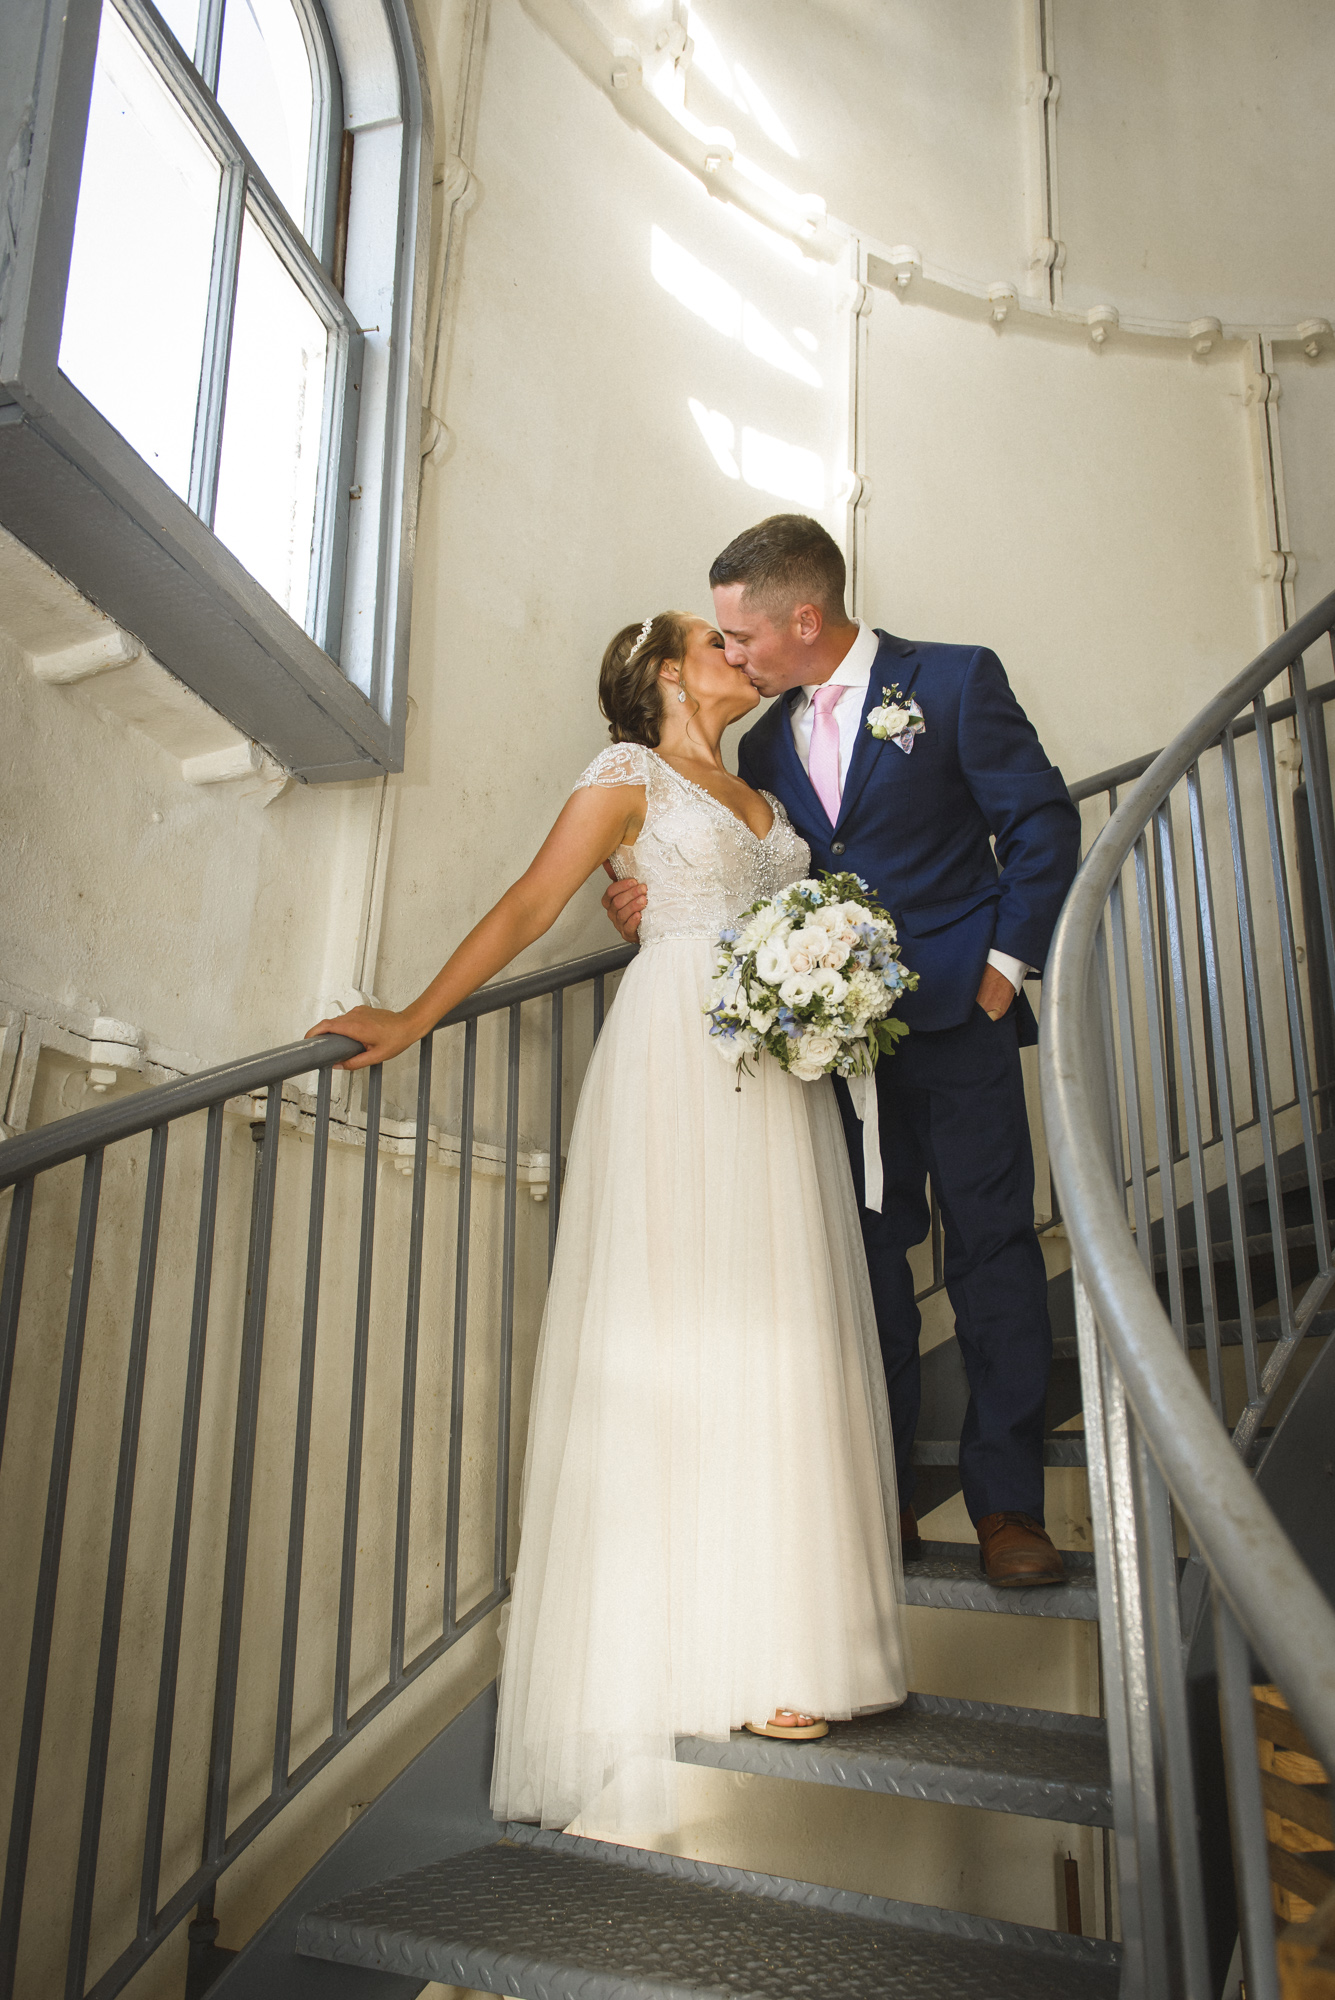 A bride and groom pose for a photo inside the Edgartown Lighthouse photo by David Welch Photography